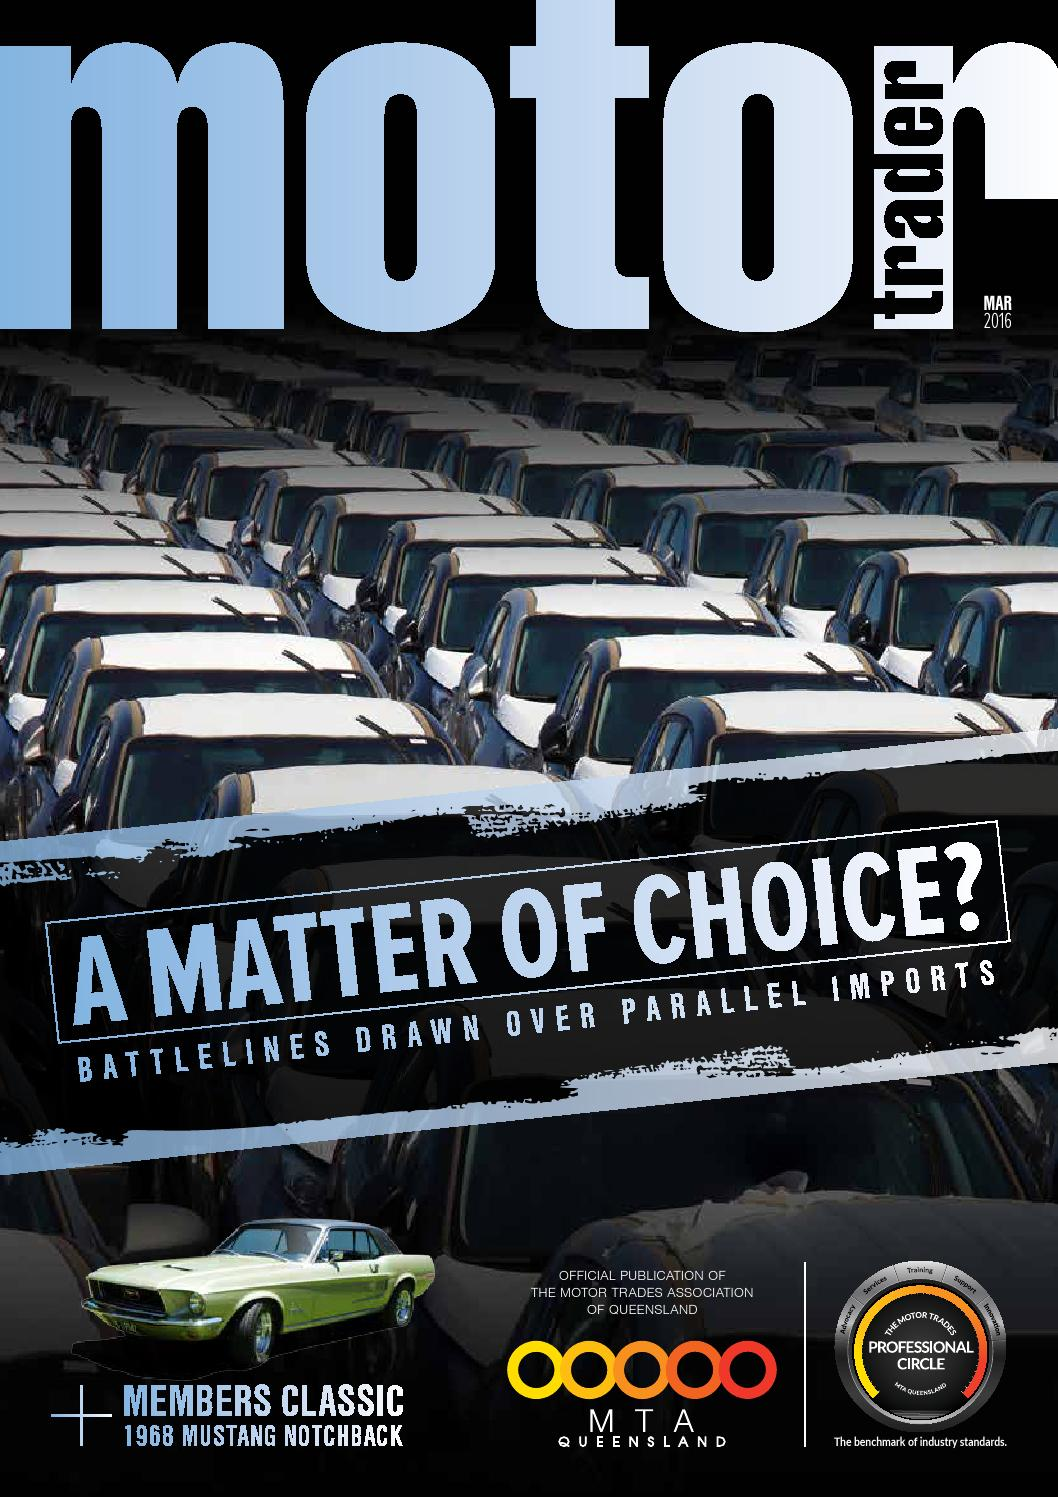 Motor trader march 2016 by mtaq it issuu fandeluxe Choice Image